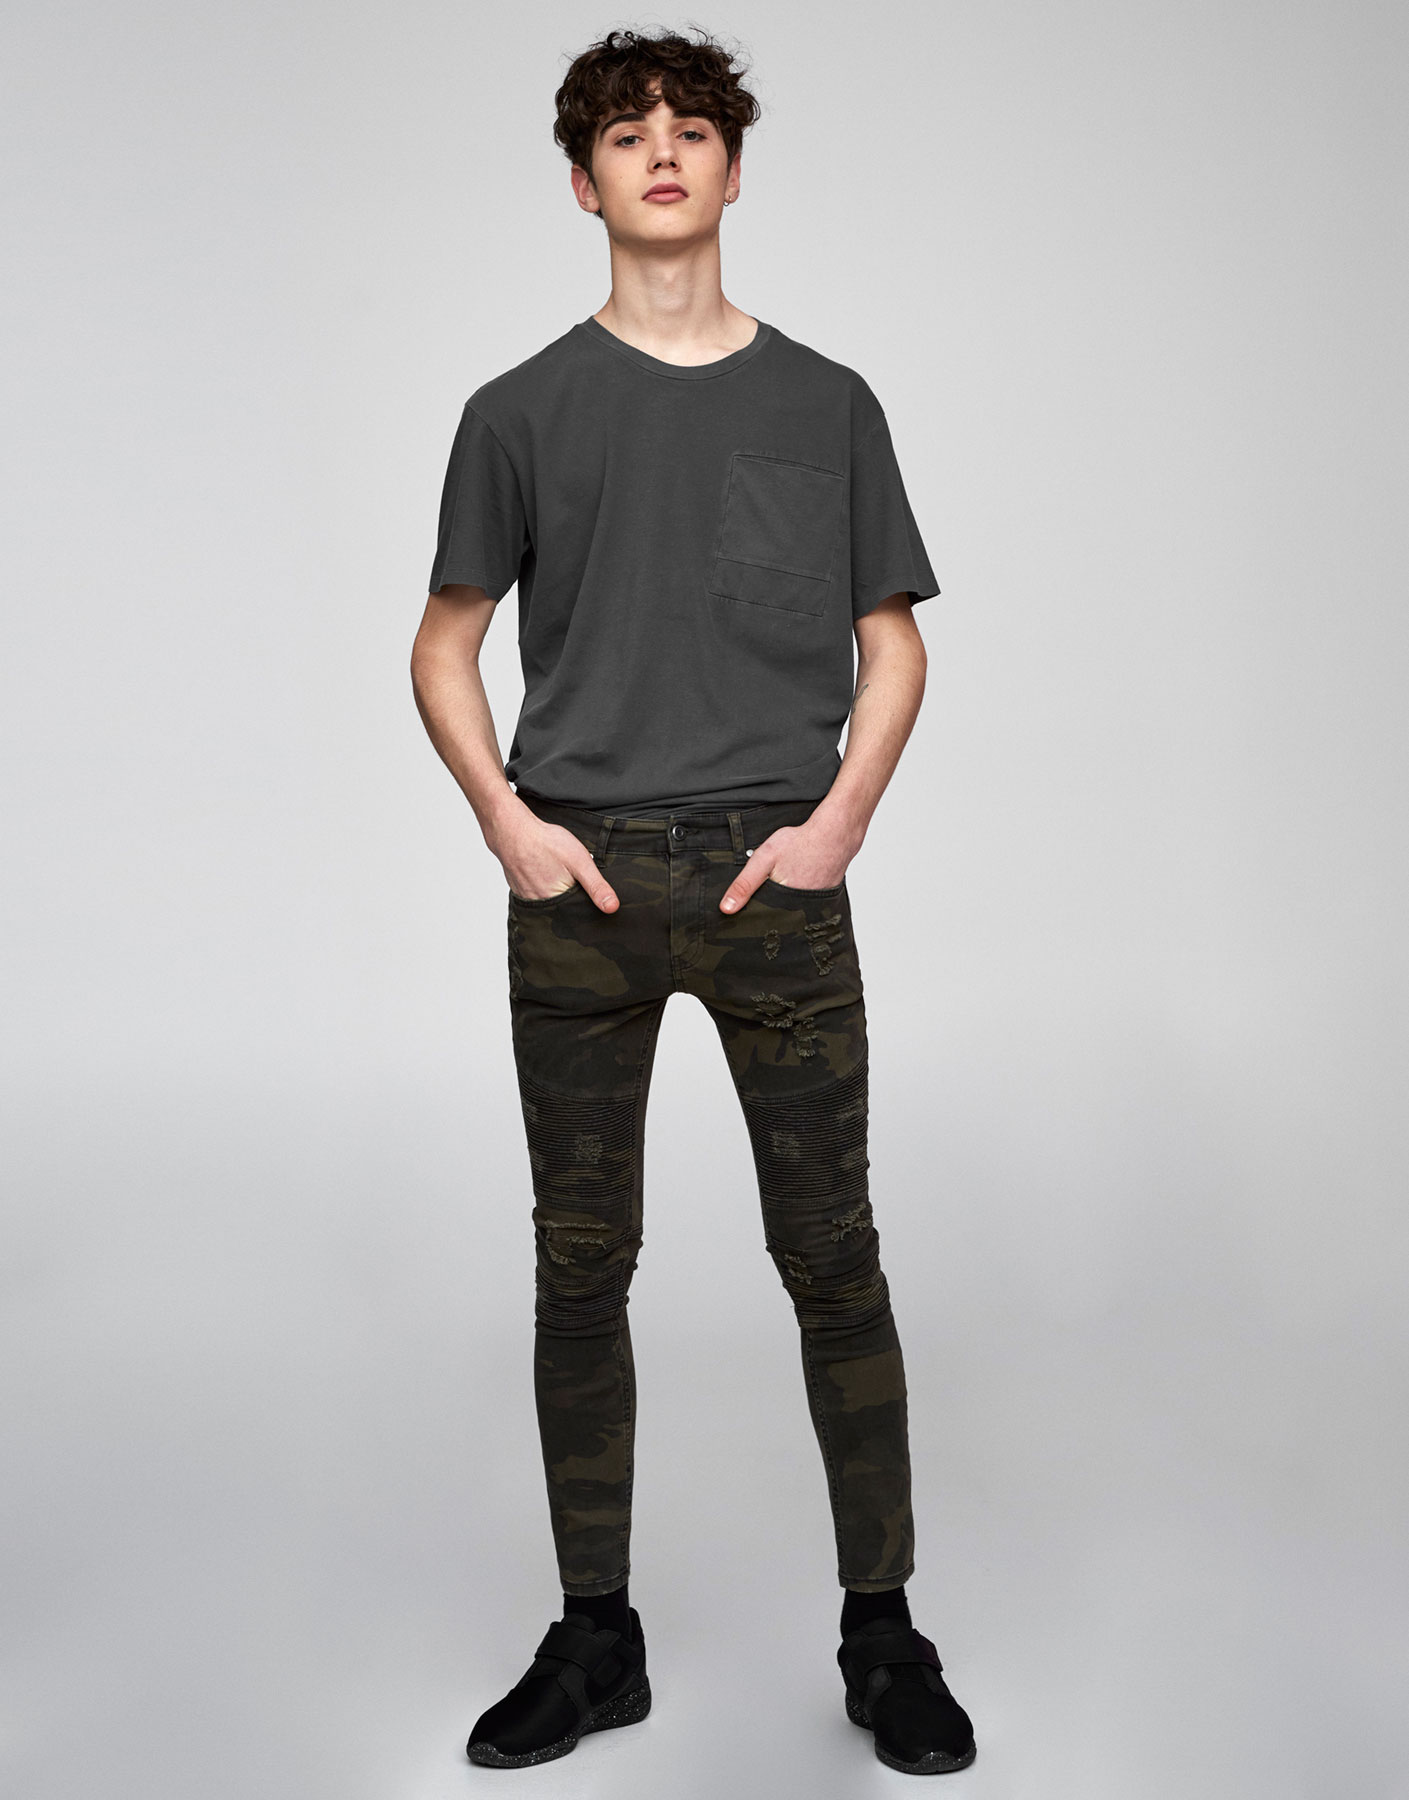 Bikerjeans im Superskinny-Fit mit Camouflageprint